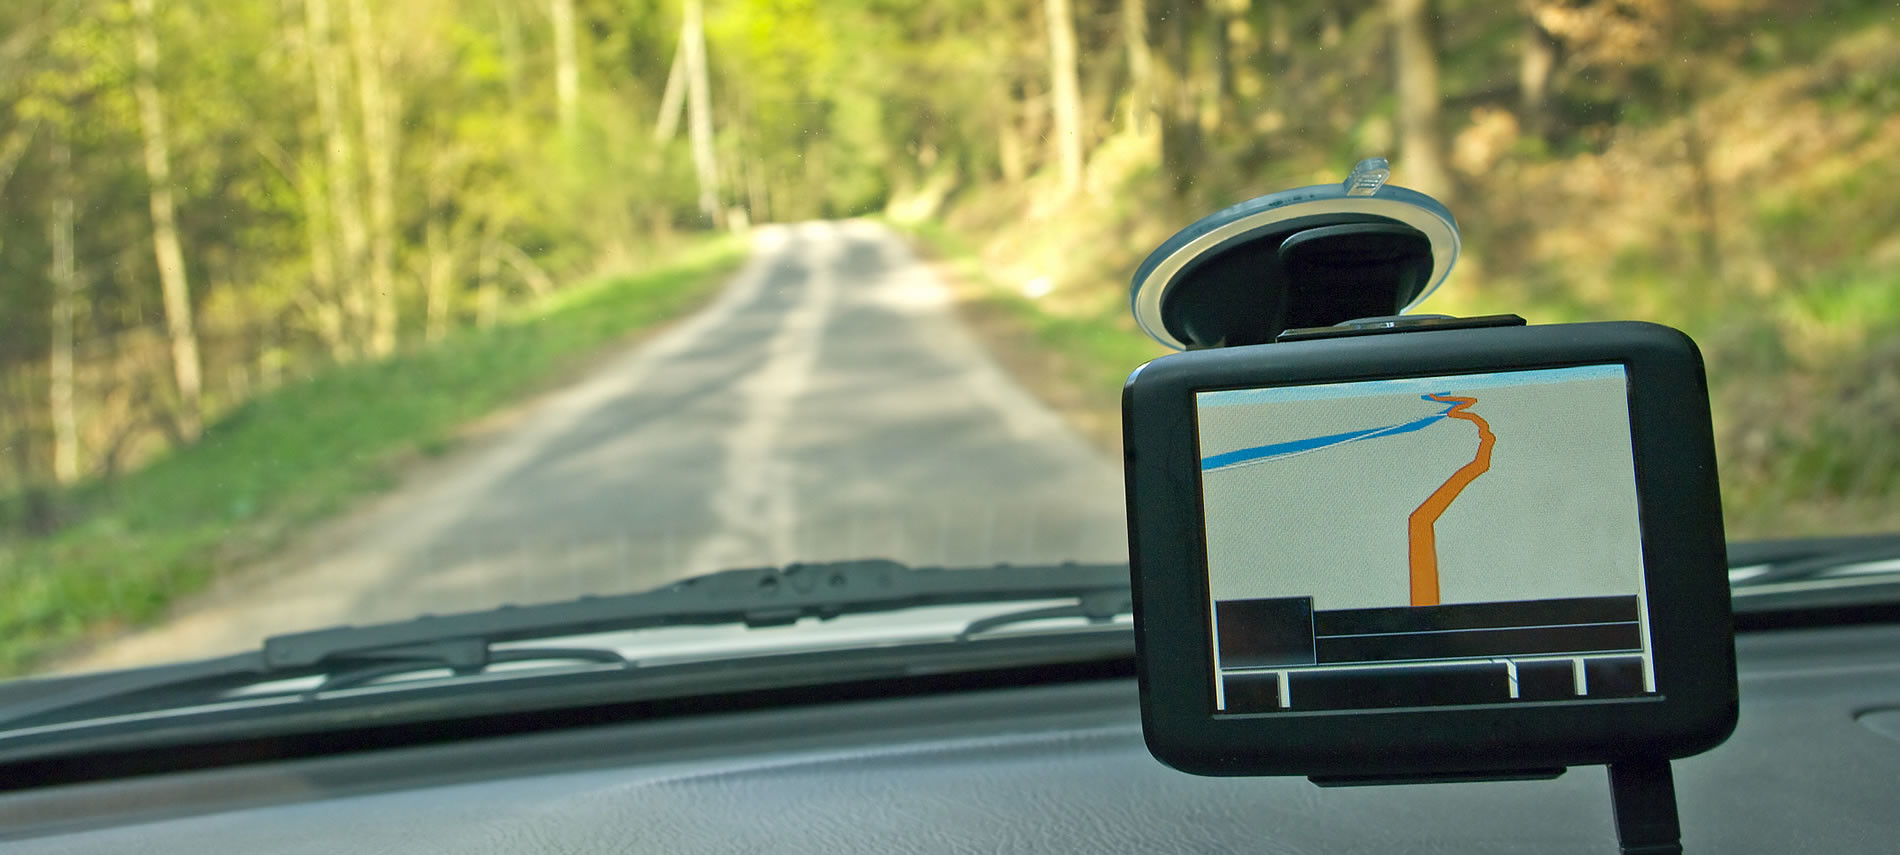 on a windshield a black GPS shows the way through the woods on a windy road